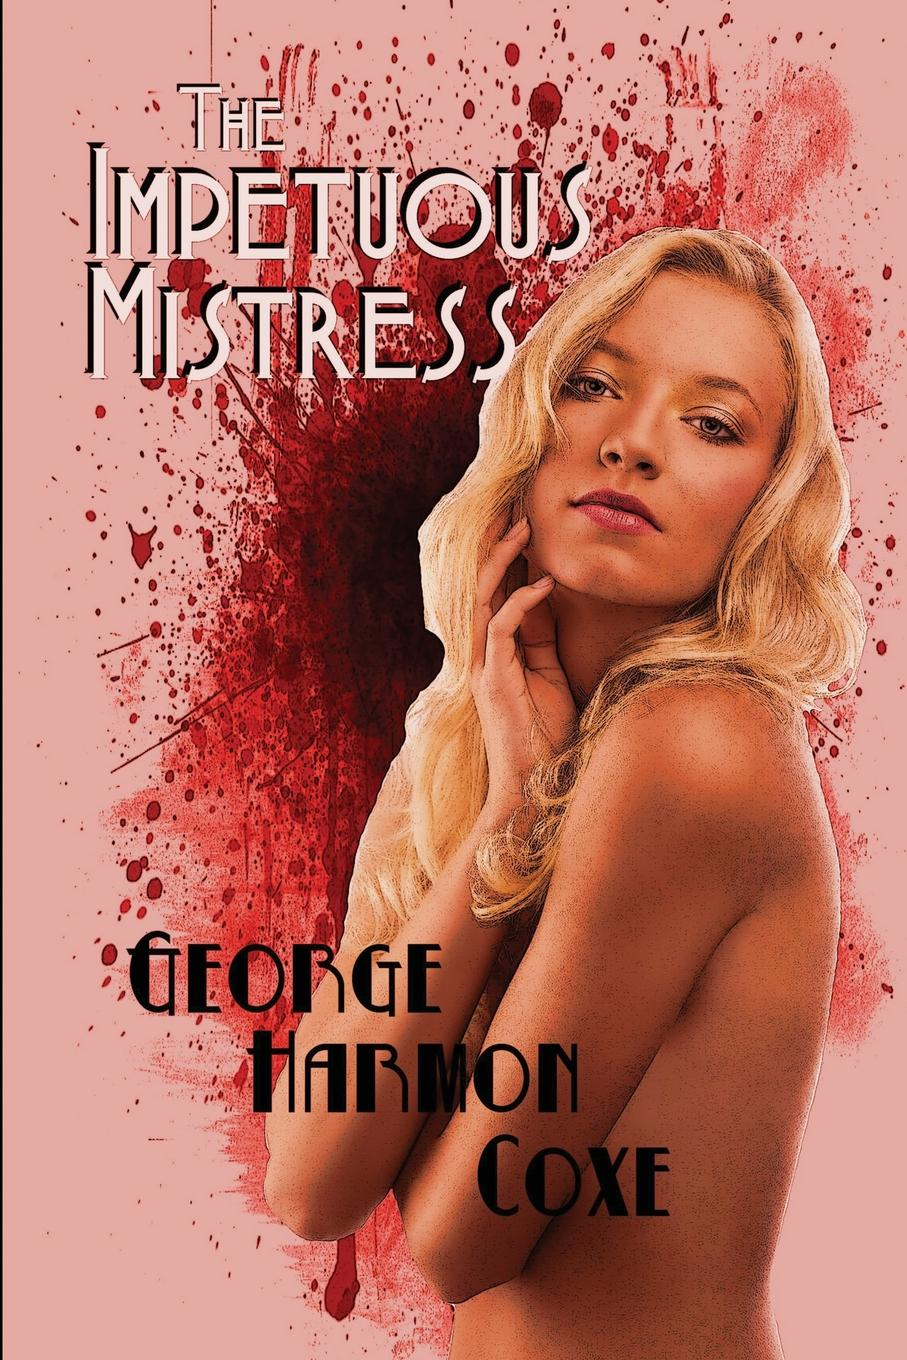 George Harmon Coxe The Impetuous Mistress who who sell out